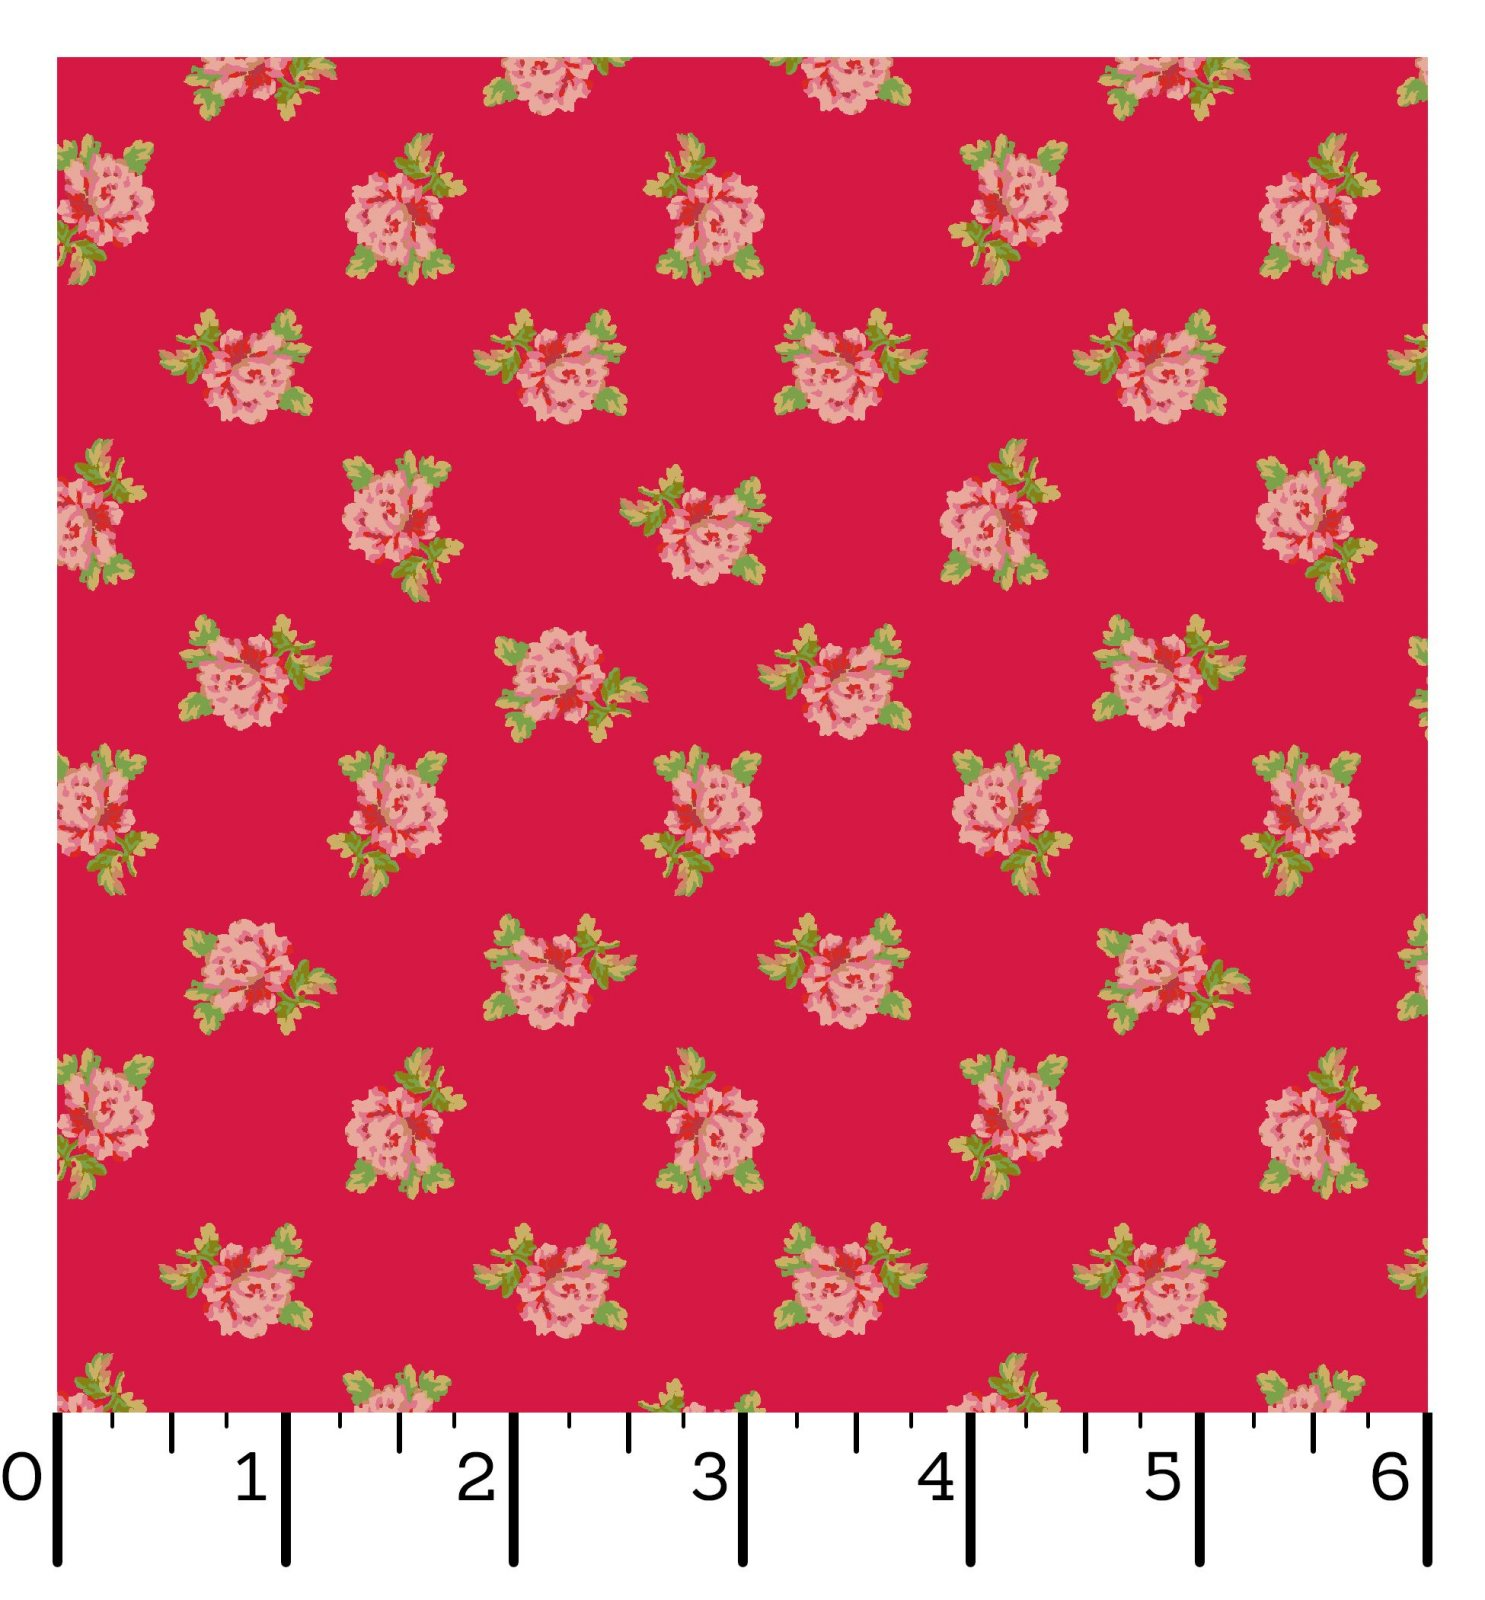 EESC-10013 R - SWEET BEGINNINGS BY JERA BRANDVIG SPACED FLORAL RED - ARRIVING IN JUNE 2021